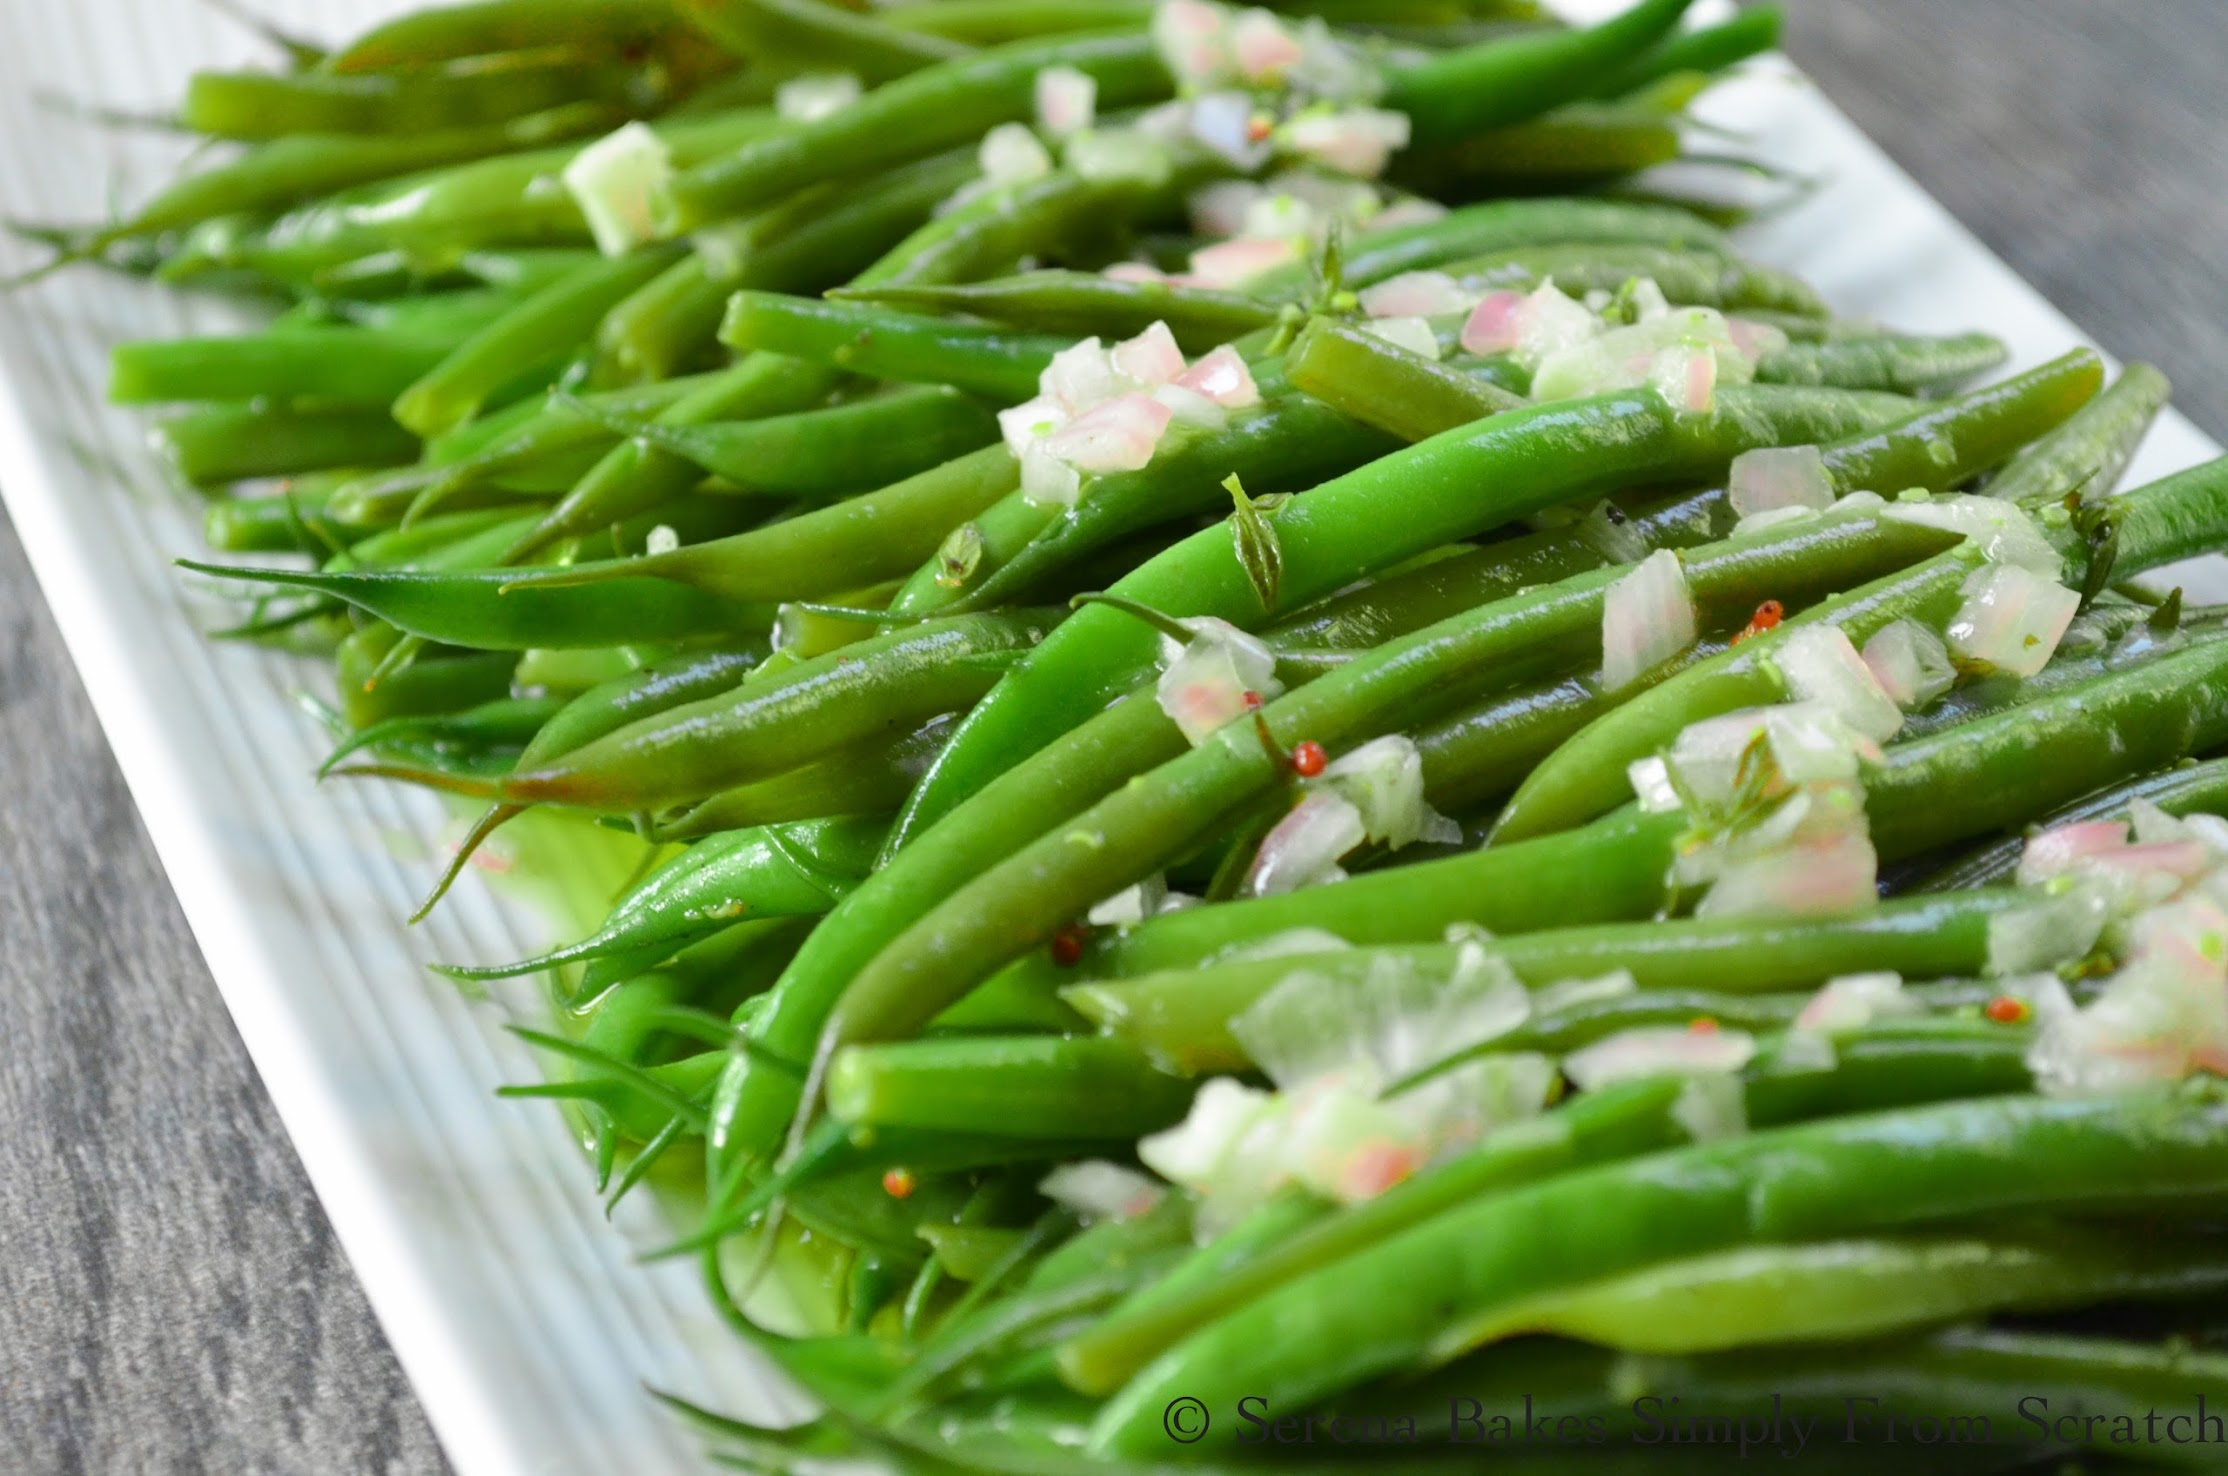 Green Bean Salad With Grainy Dijon Shallot Vinaigrette elegant enough for company but simple enough for any night!